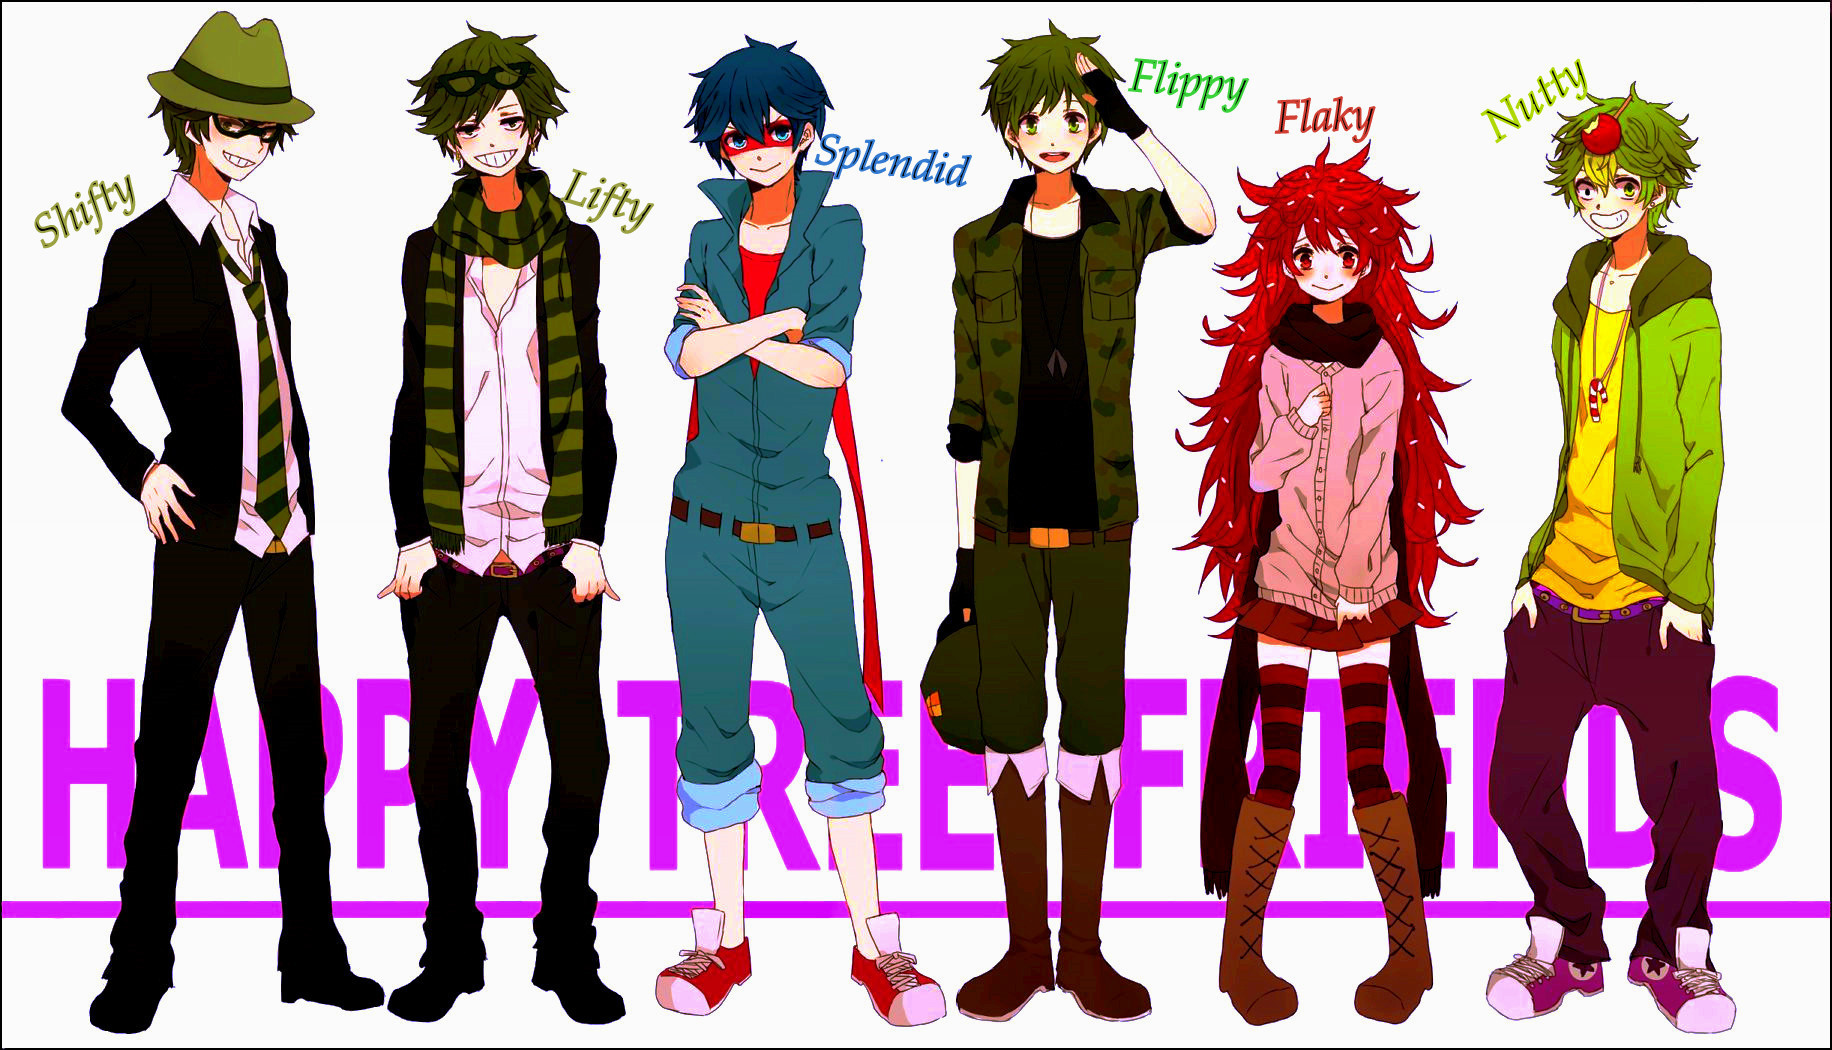 http://images4.fanpop.com/image/photos/20600000/HAPPY-TREE-FRIENDS-ANIME-happy-tree-friends-20625010-1832-1050.jpg